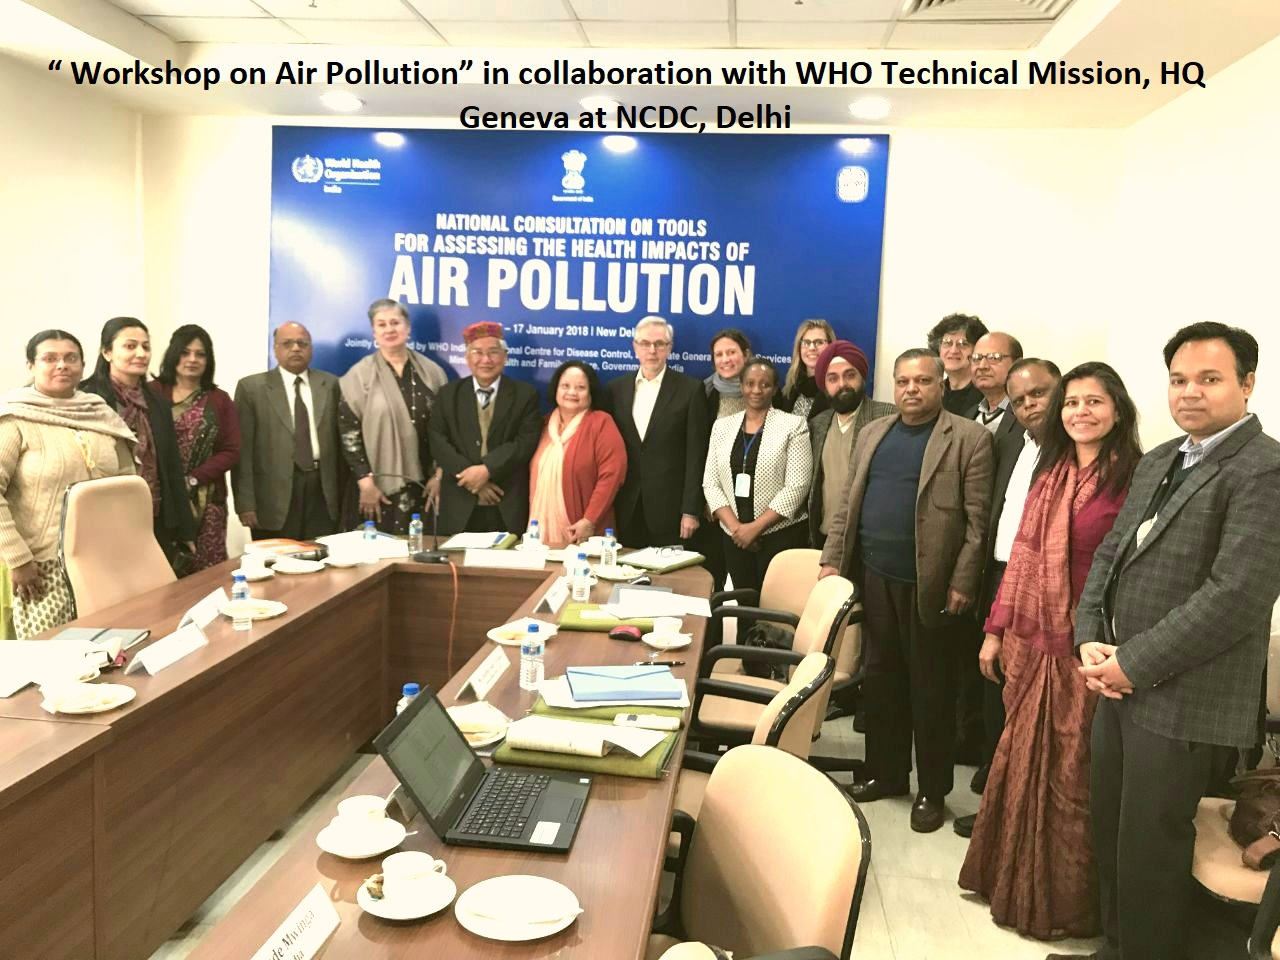 Work Shop on Air Pollution at NCDC, Delhi in collaboration with WHO Technical Mission, HQ Geneva